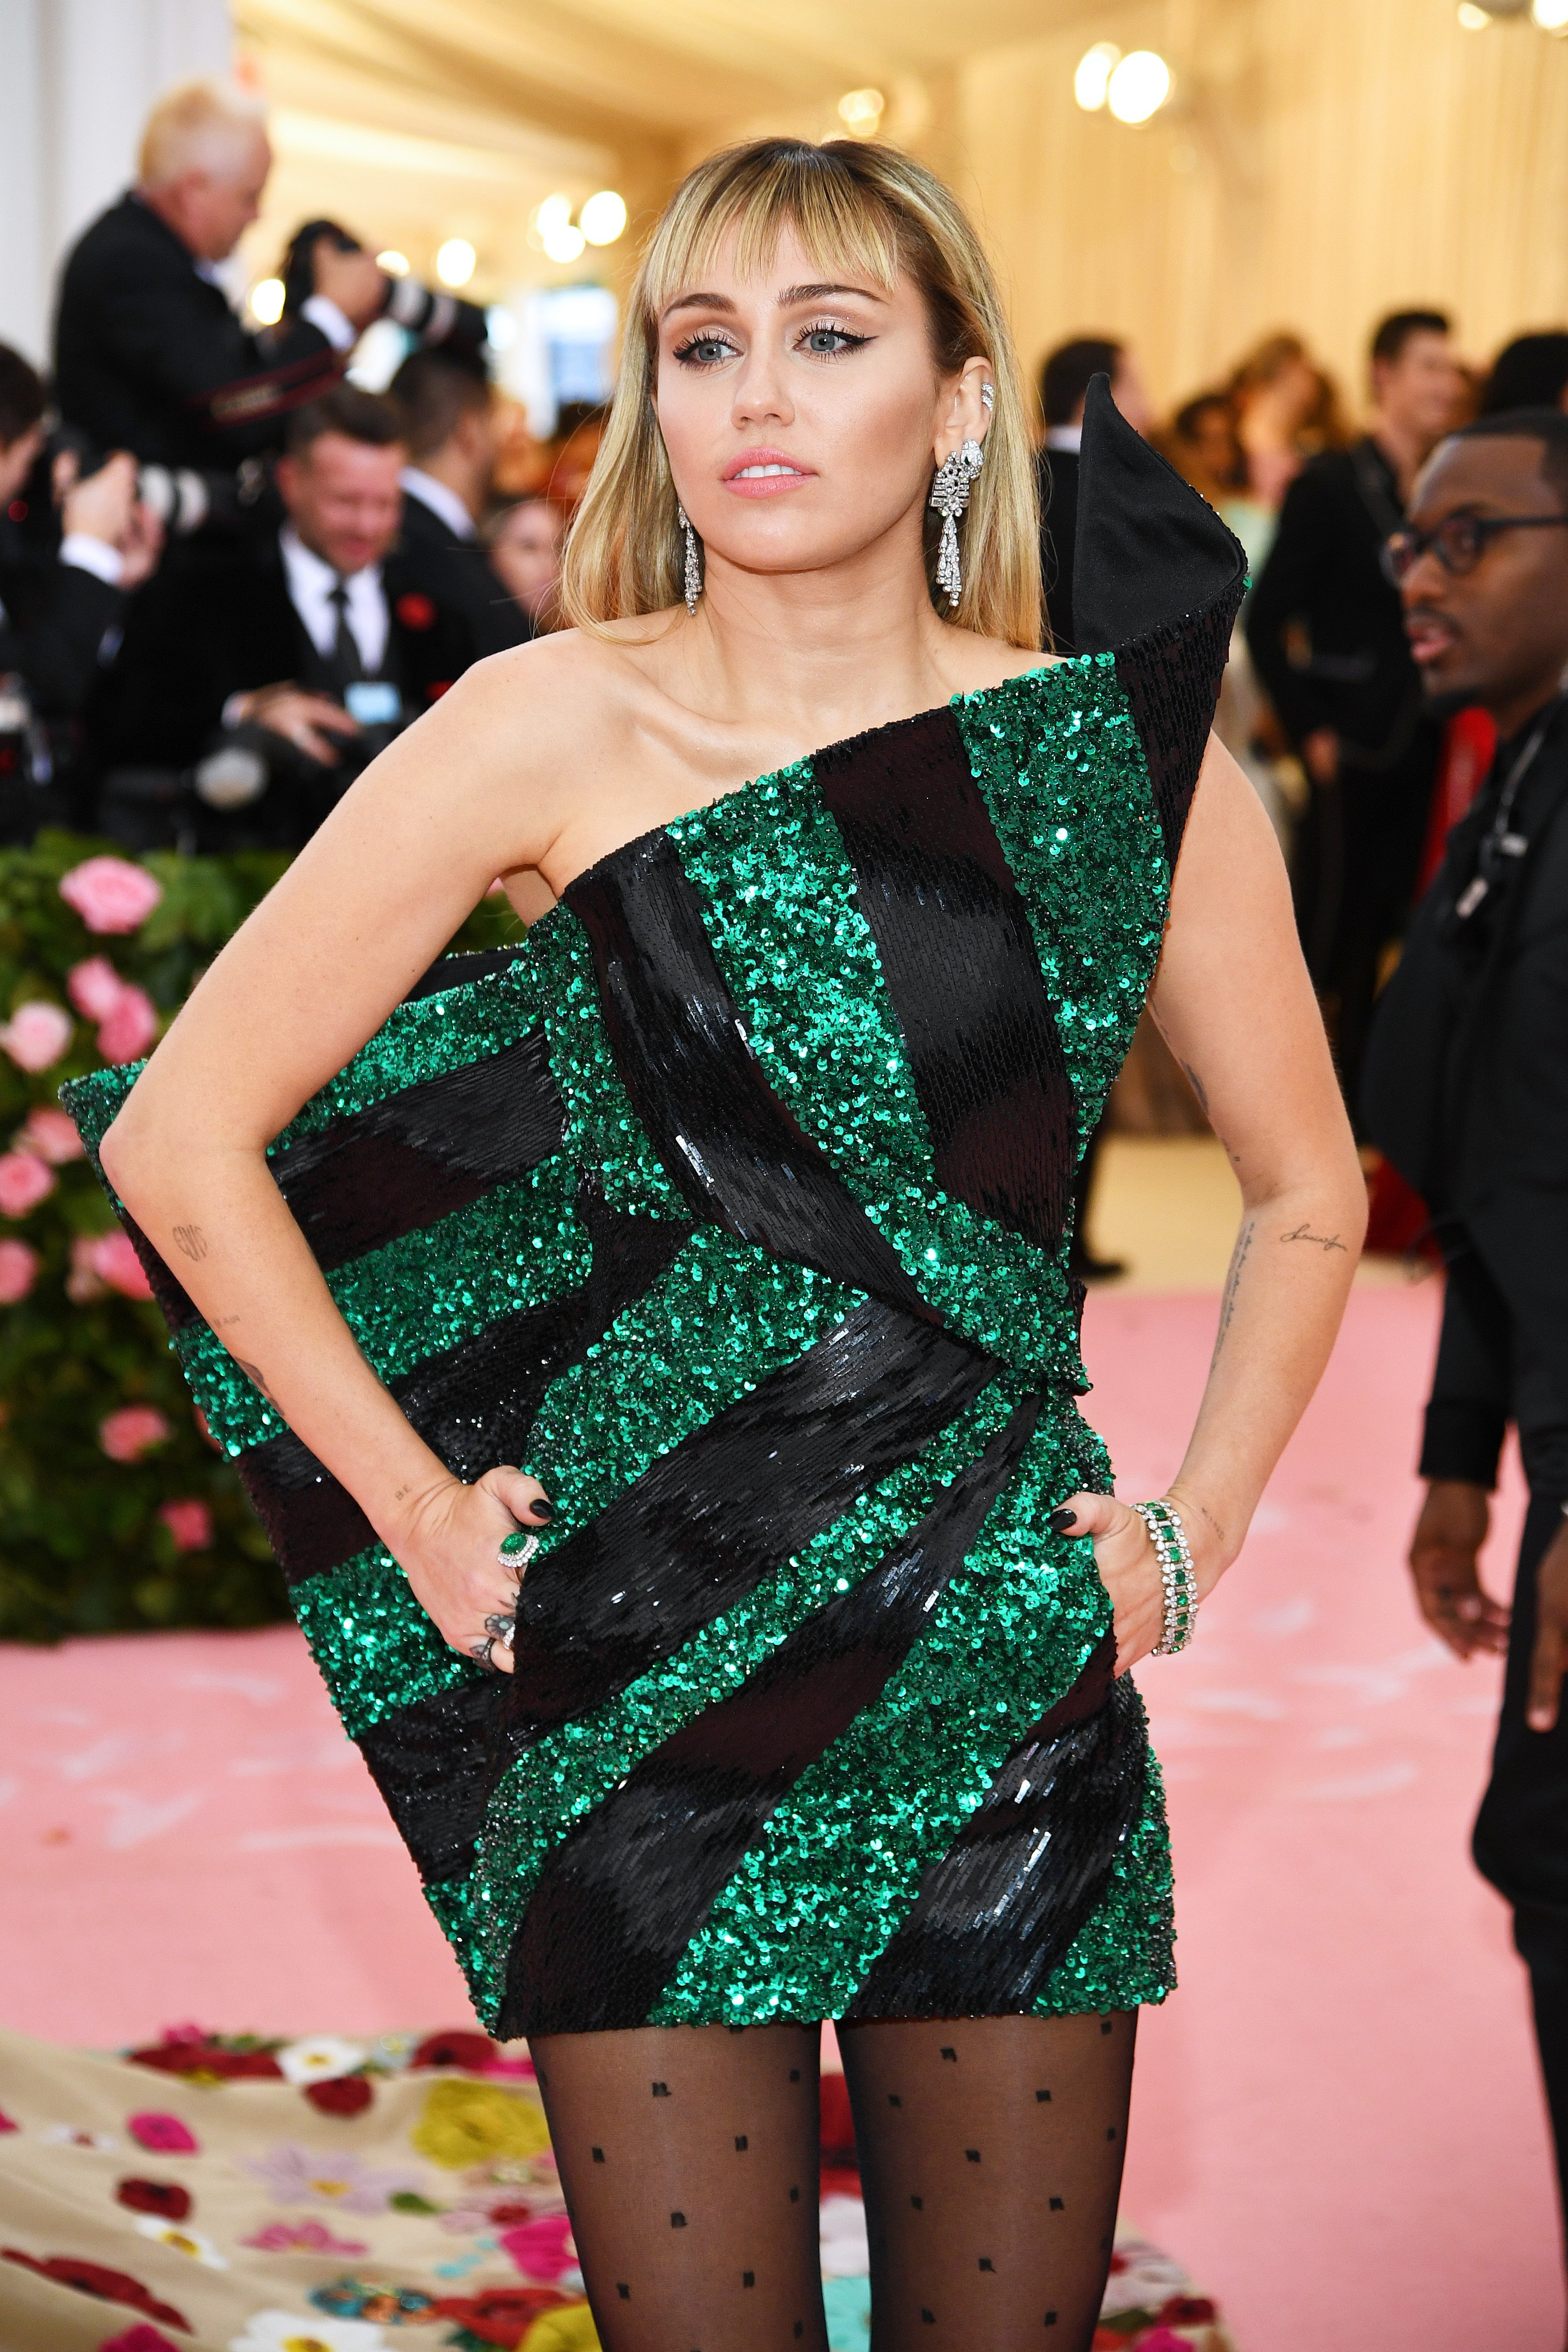 Miley Cyrus at The Met Gala Celebrating Camp: Notes on Fashion at Metropolitan Museum of Art on May 06, 2019 in New York City | Photo: Getty Images